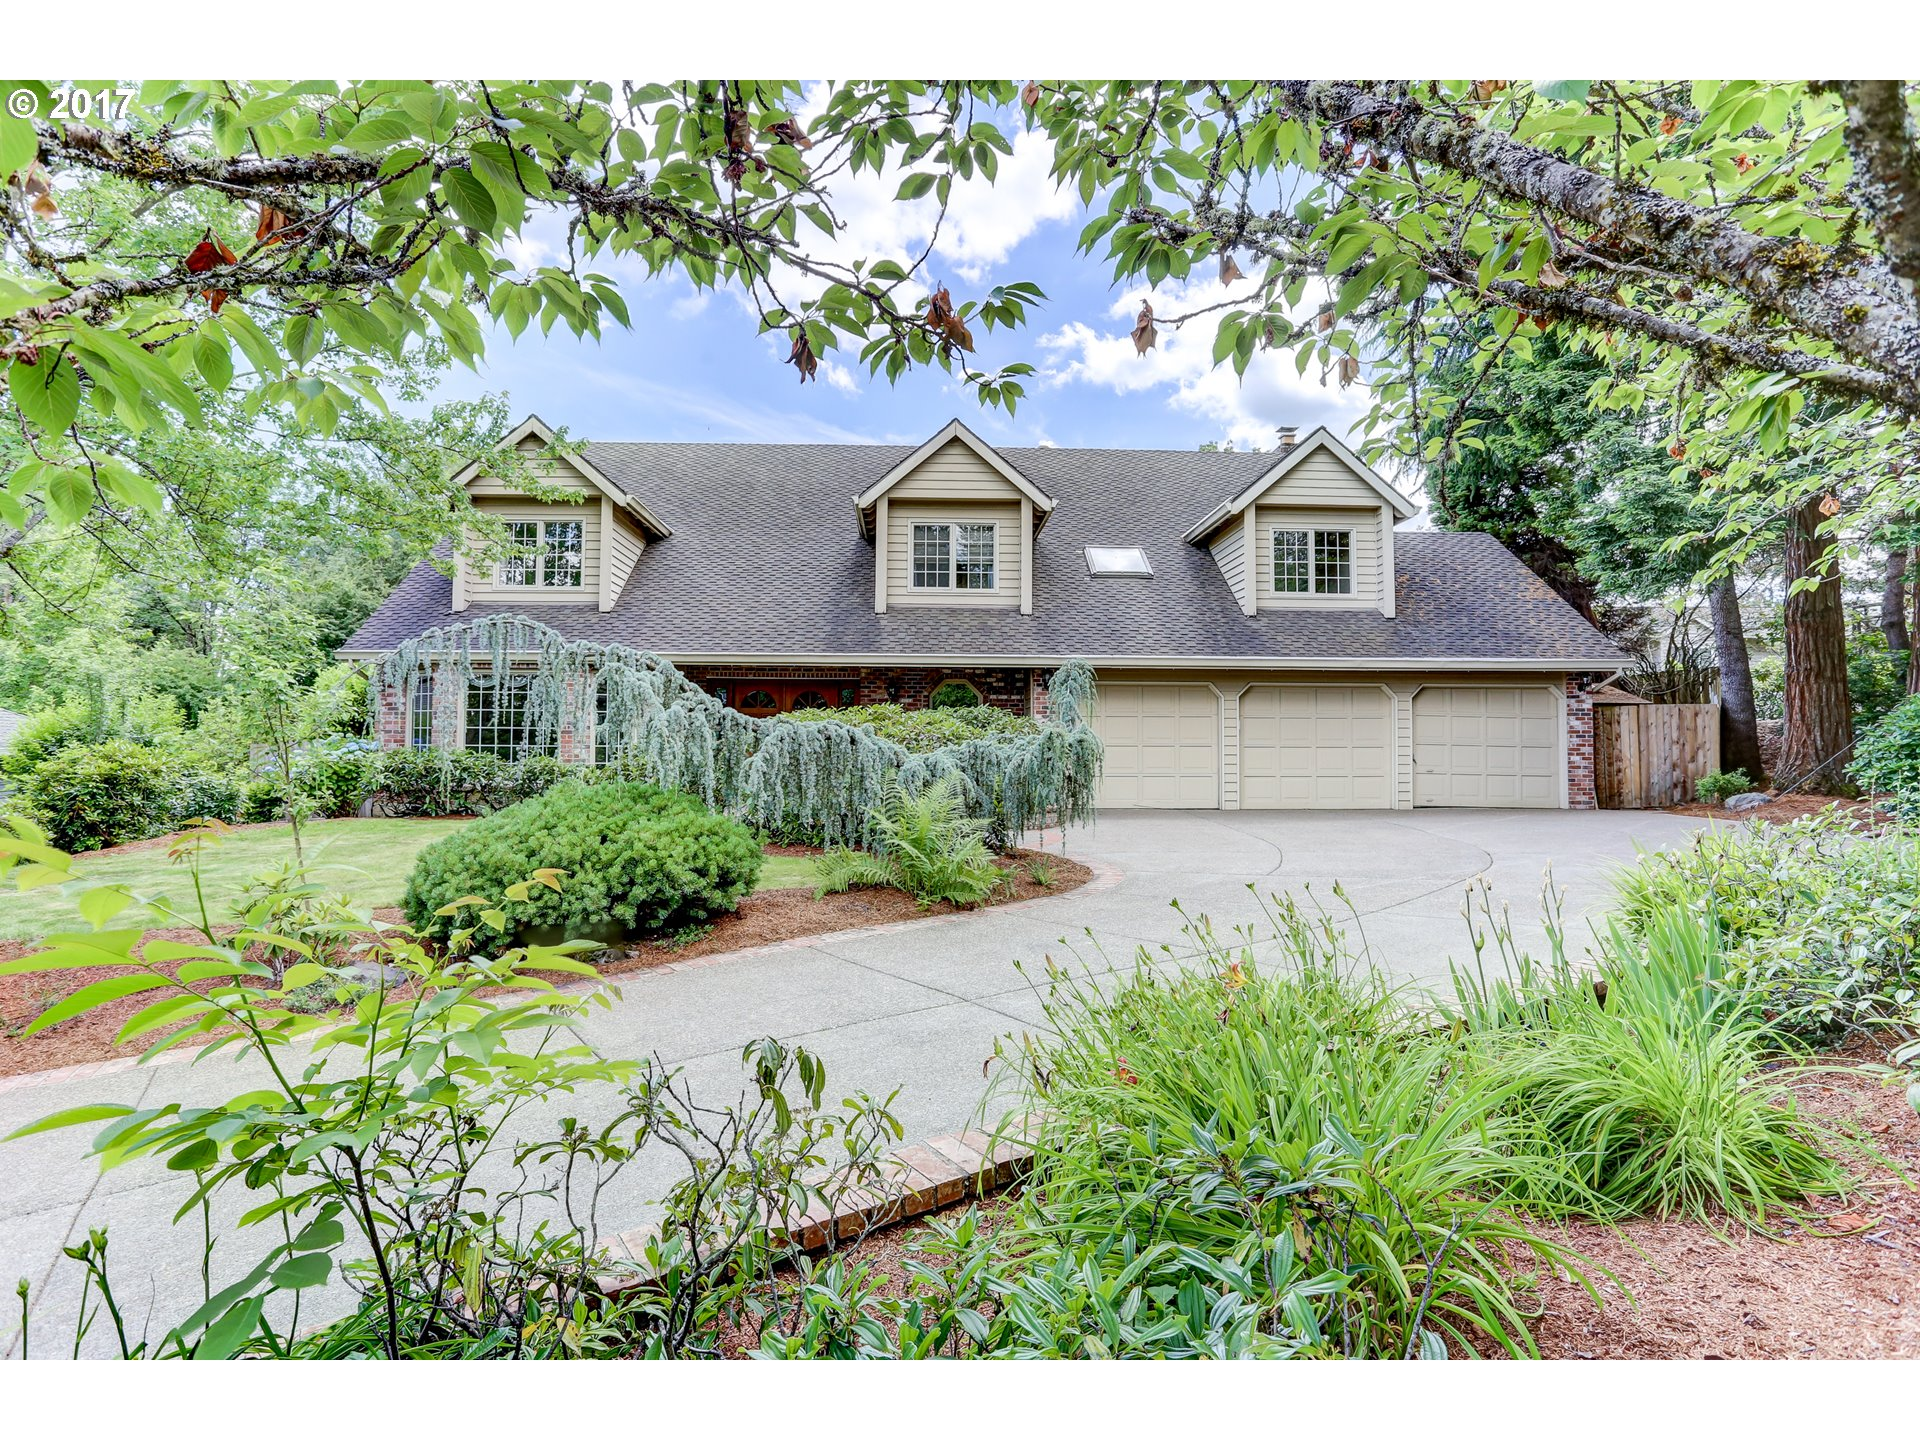 17645 OAK MEADOW LN, Lake Oswego, OR 97034